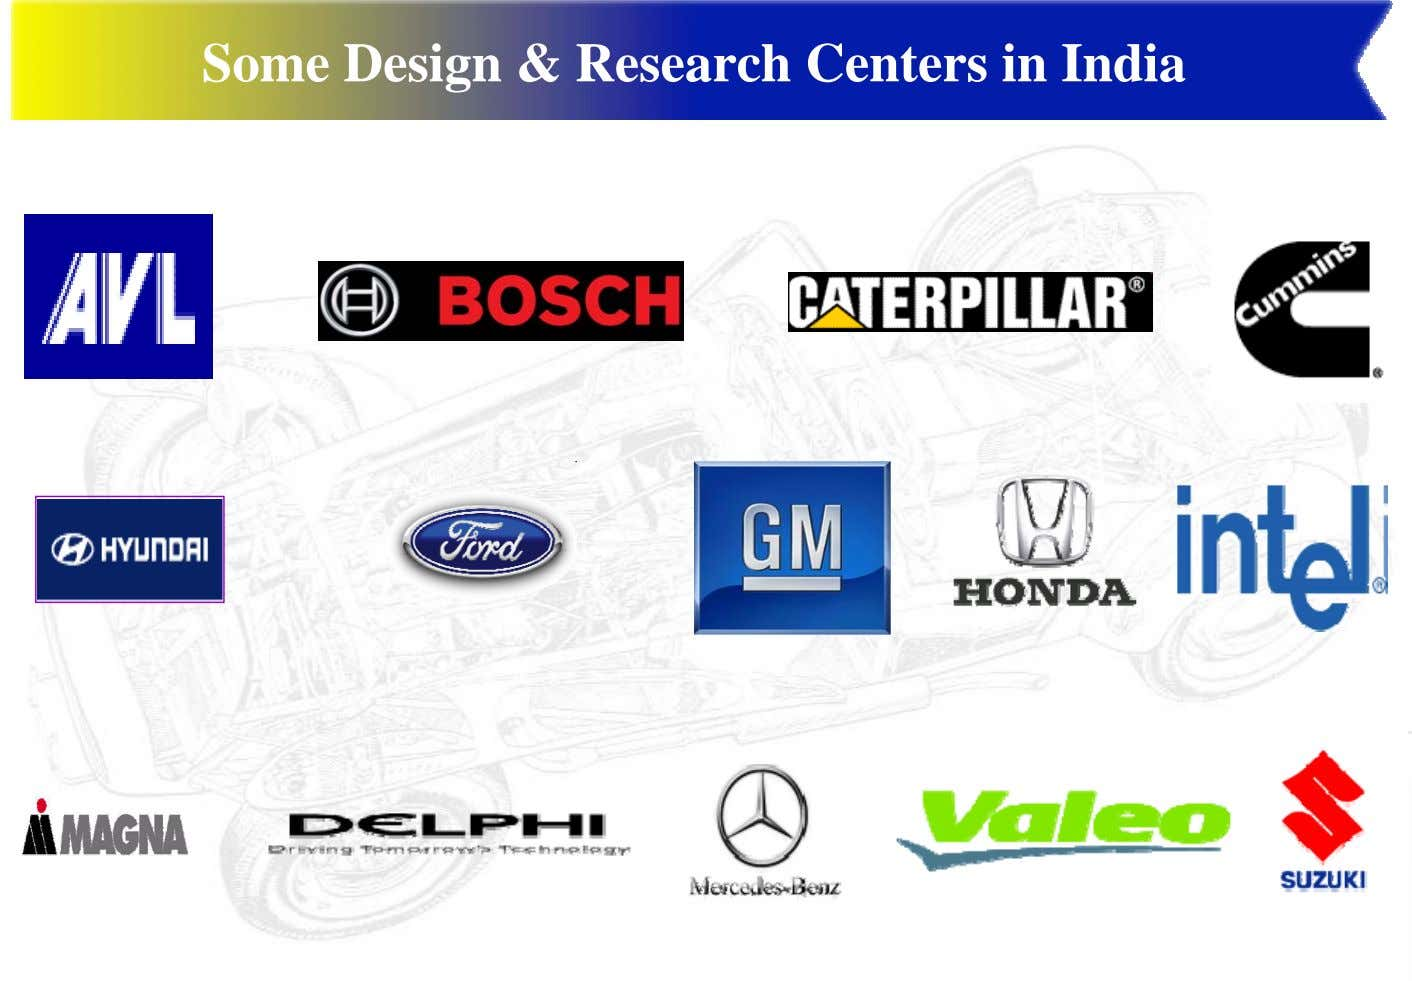 Some Design & Research Centers in India